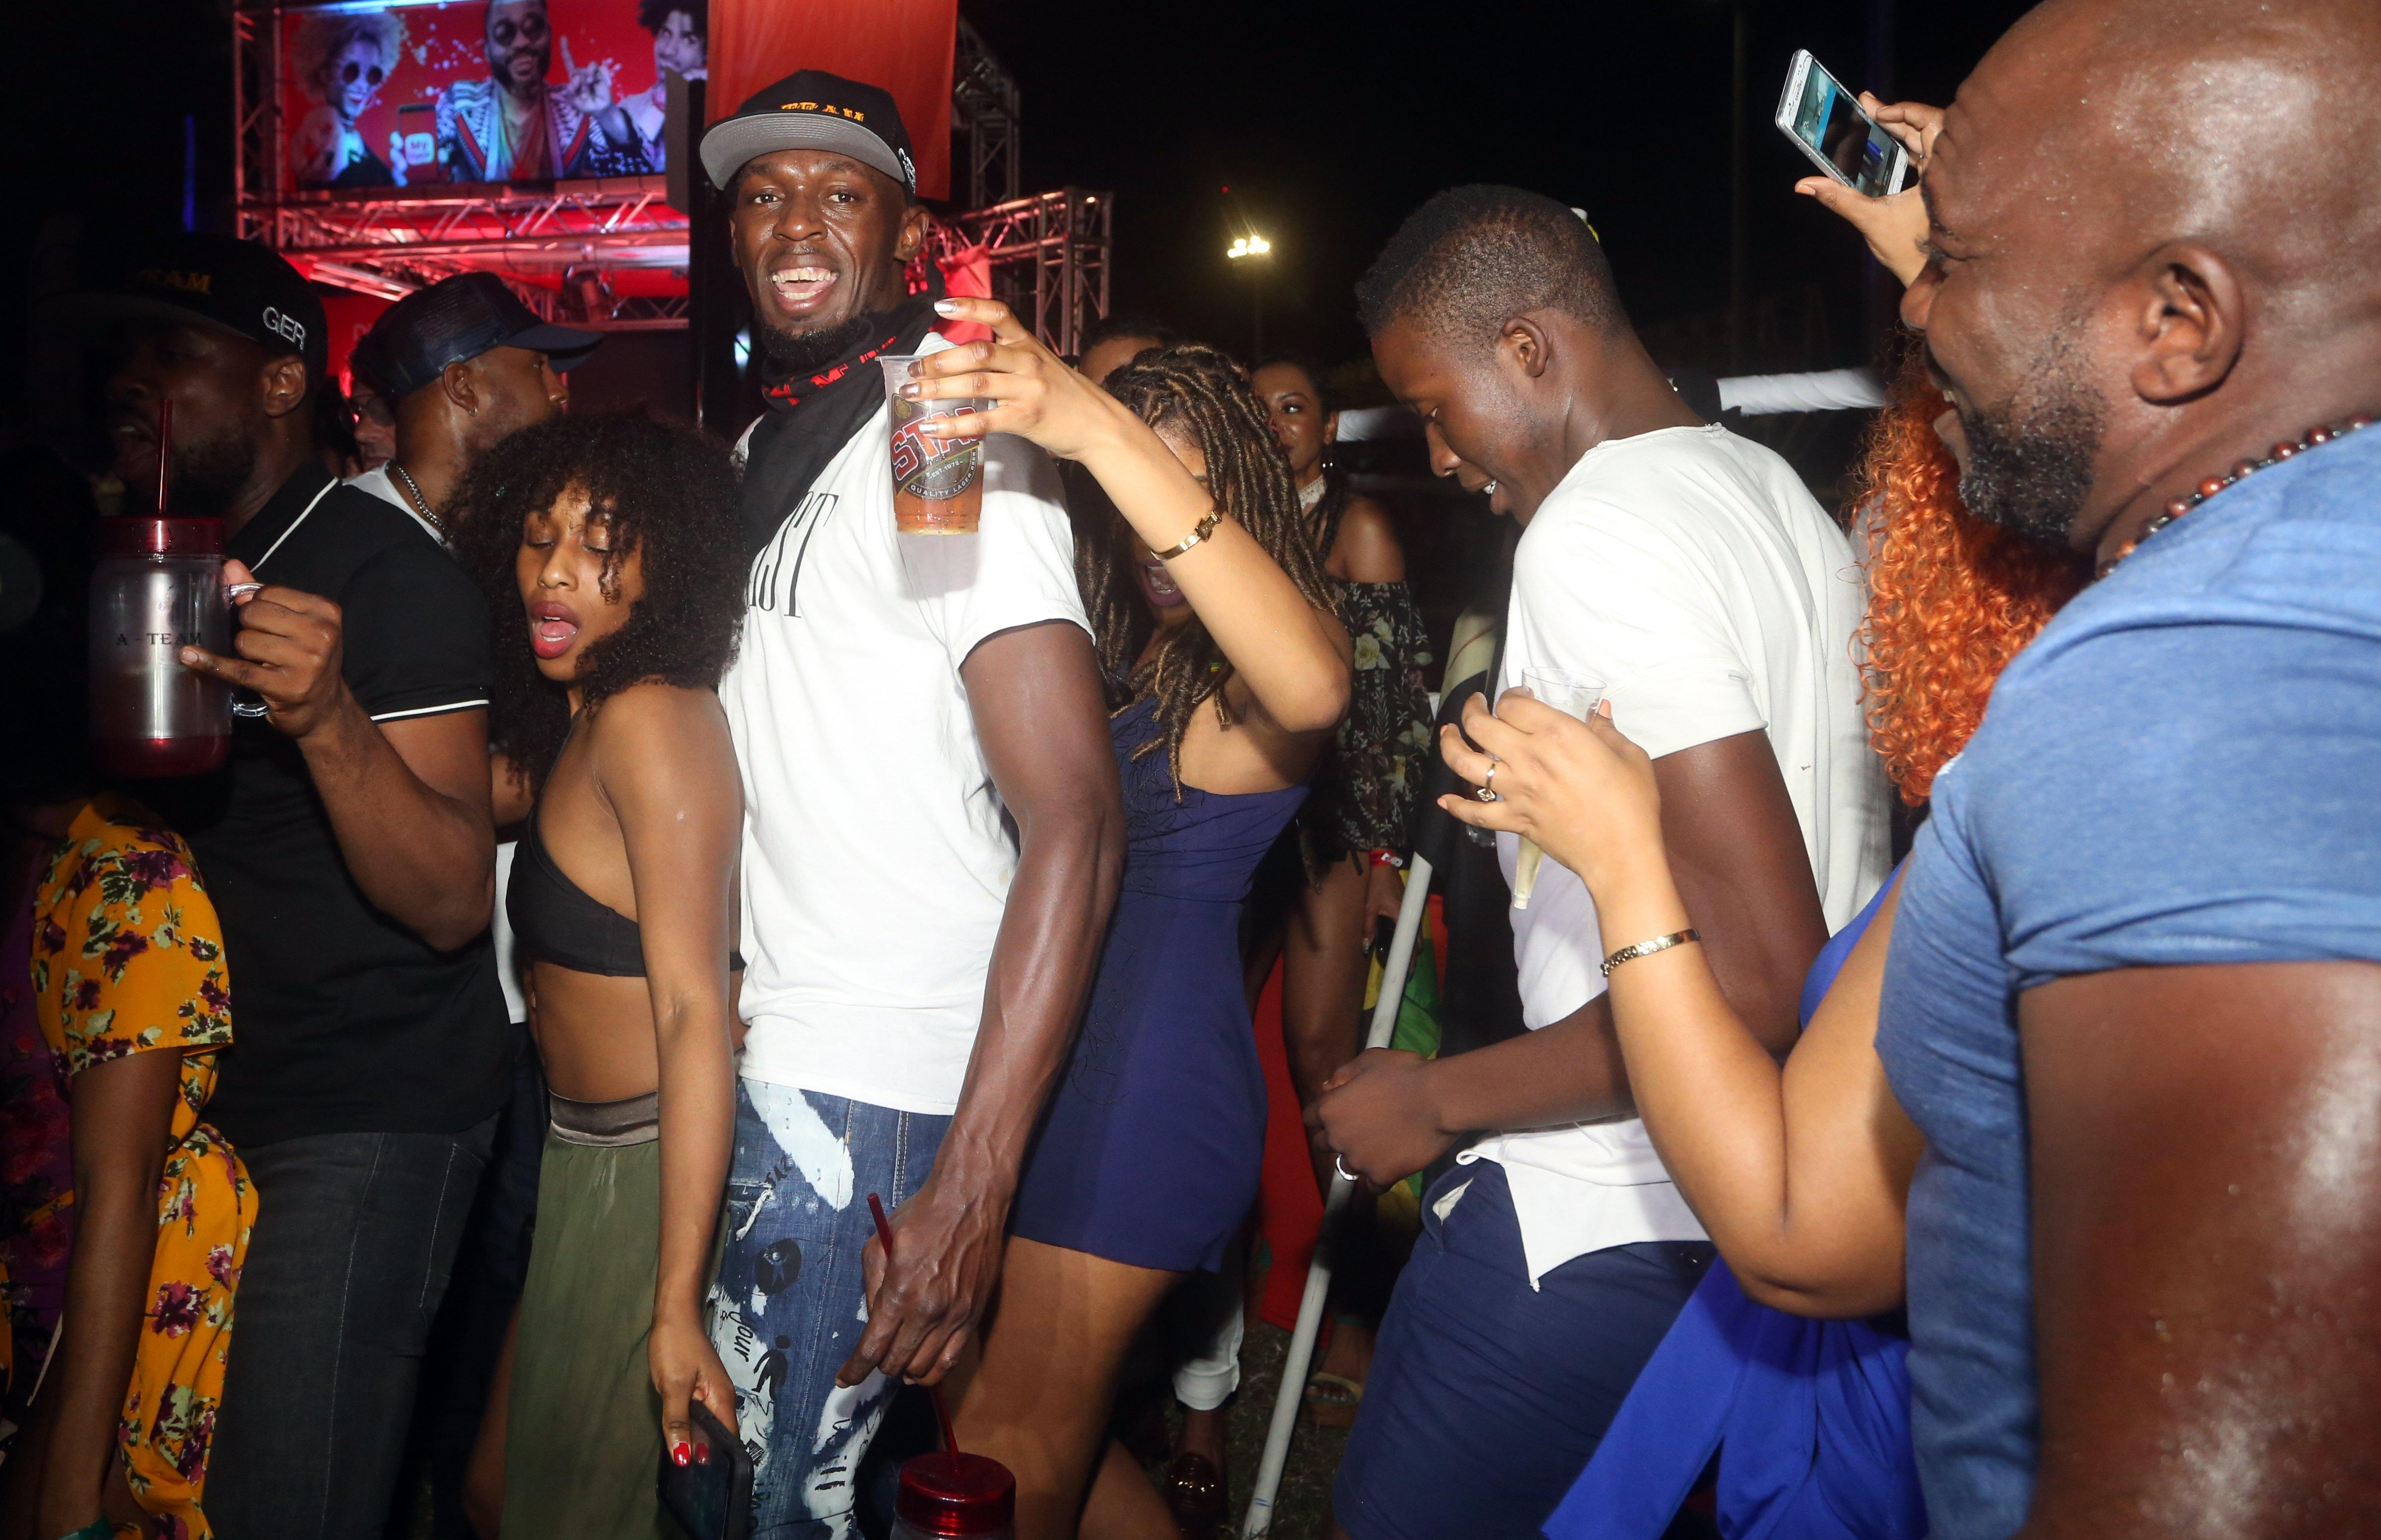 Usain Bolt was all smiles as he danced between two women